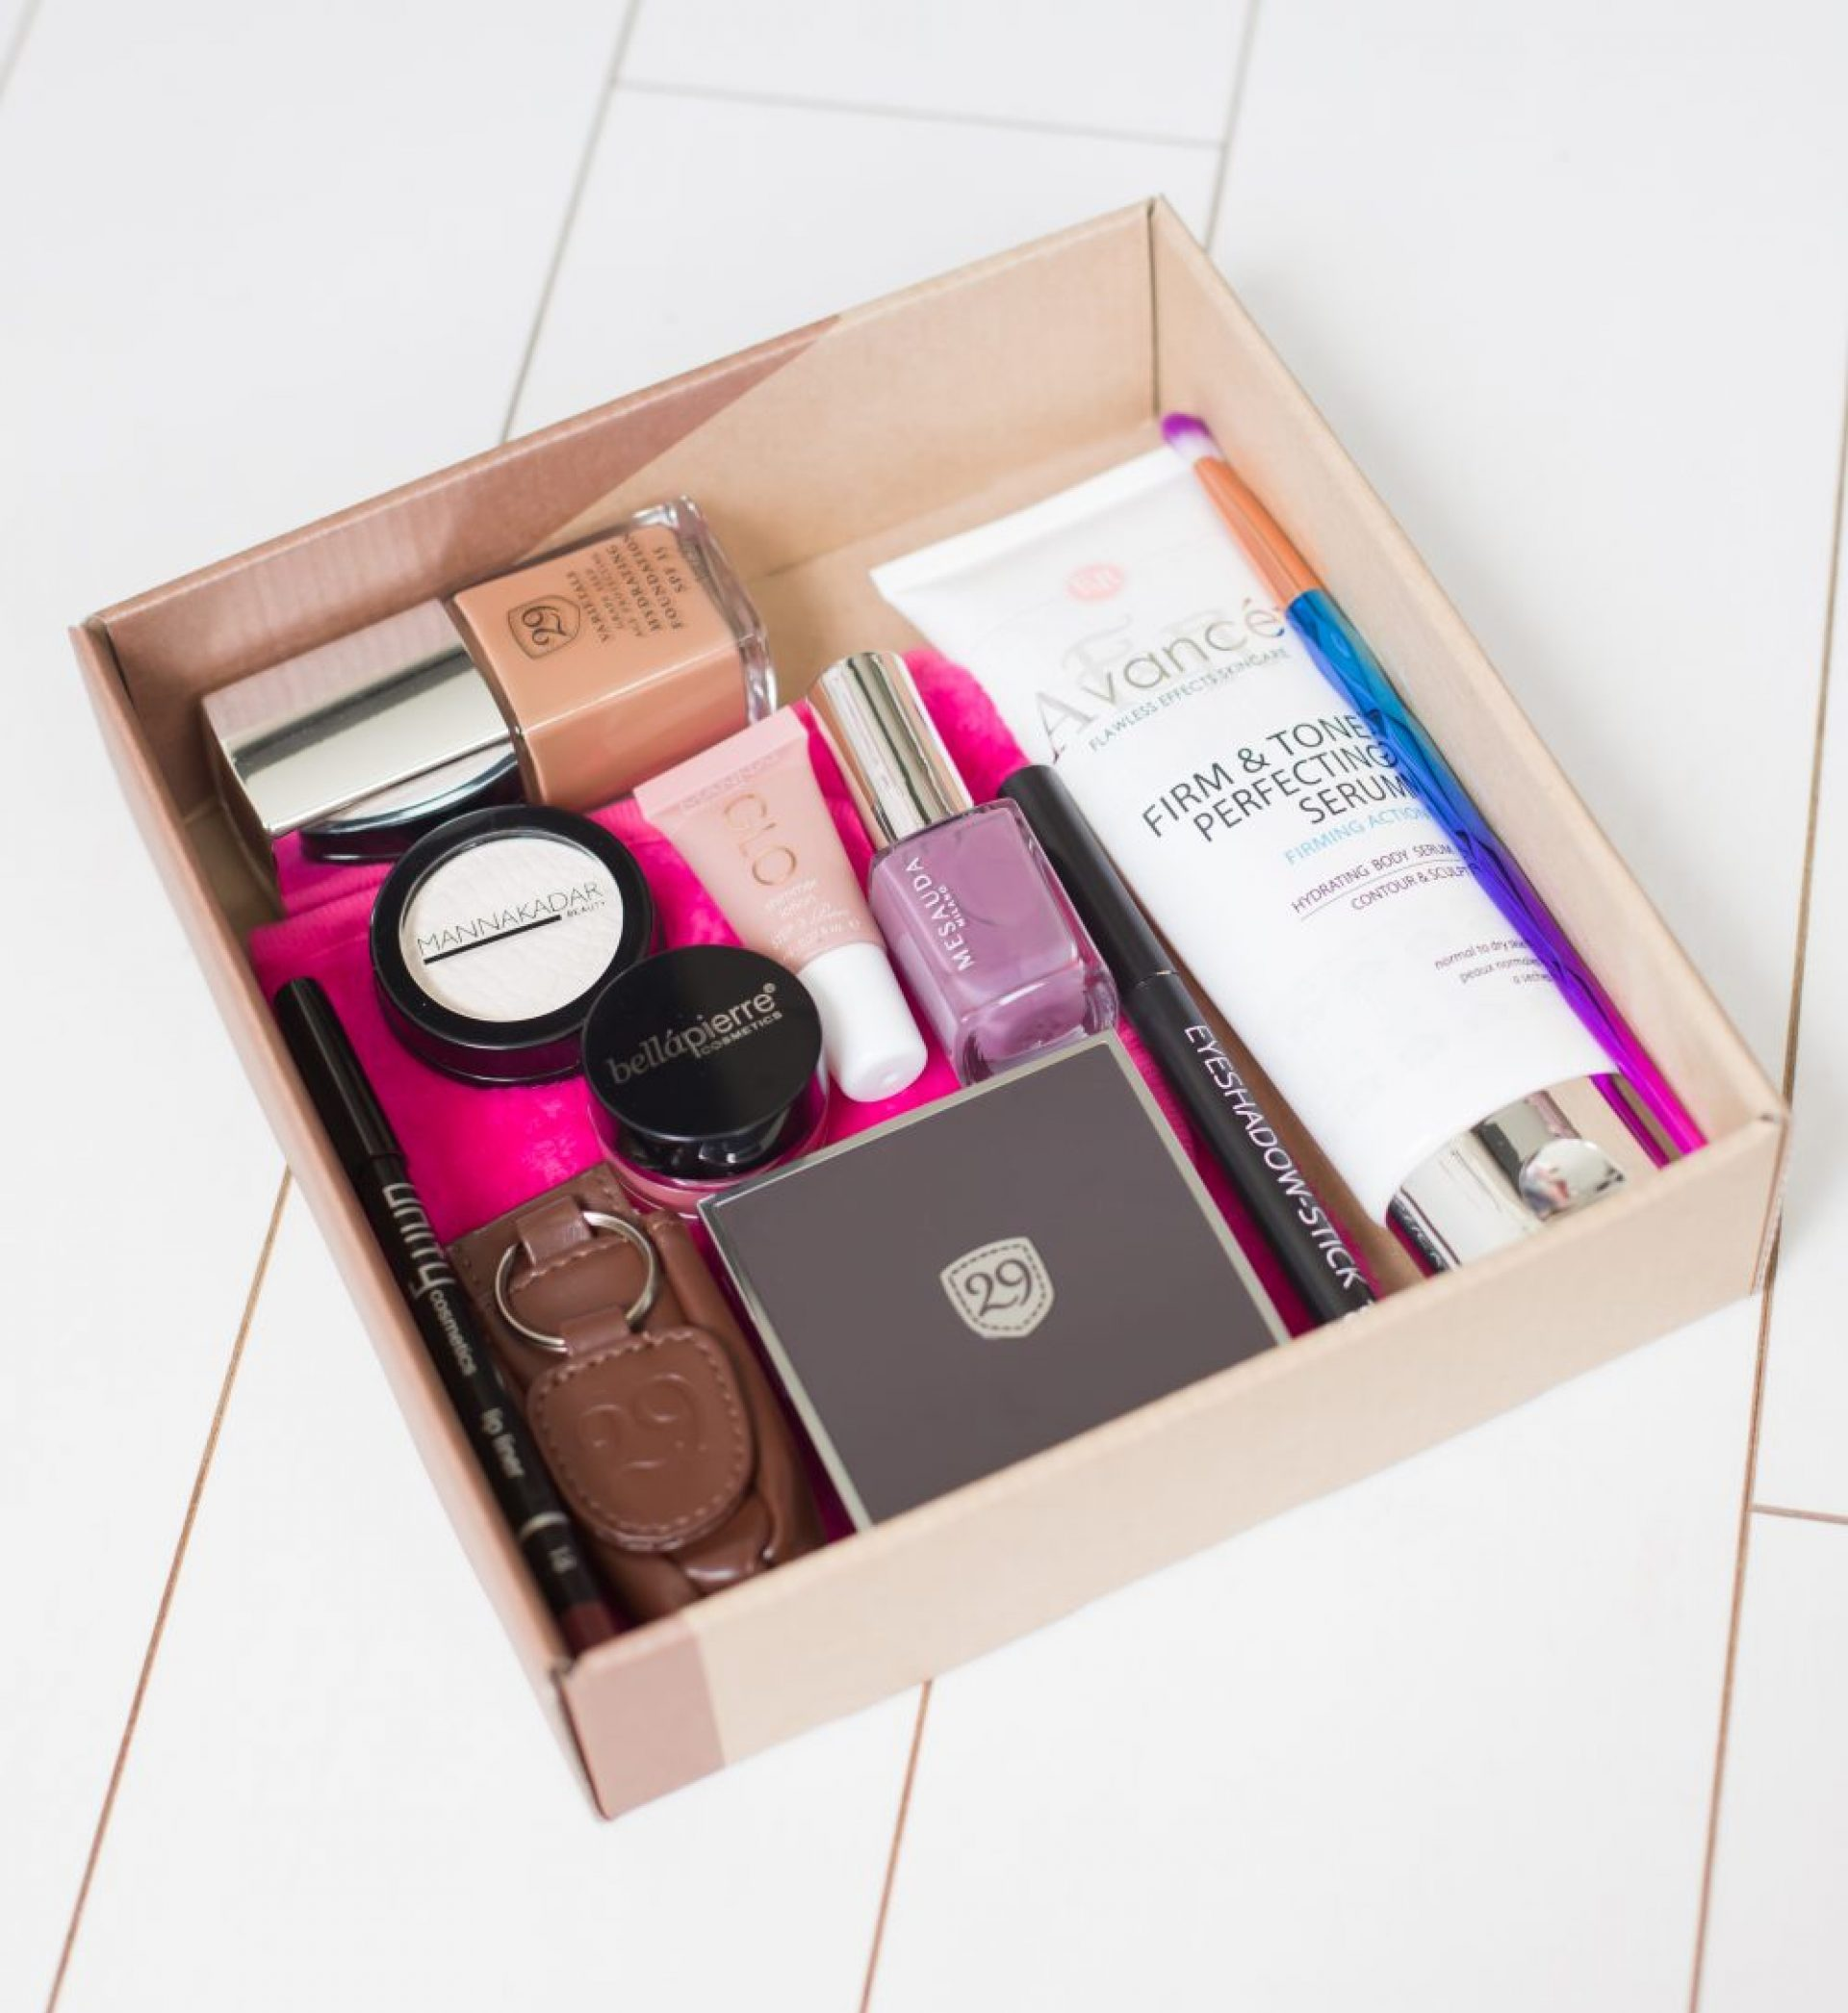 Alle producten in de box - Limited Edition special StyleTone box